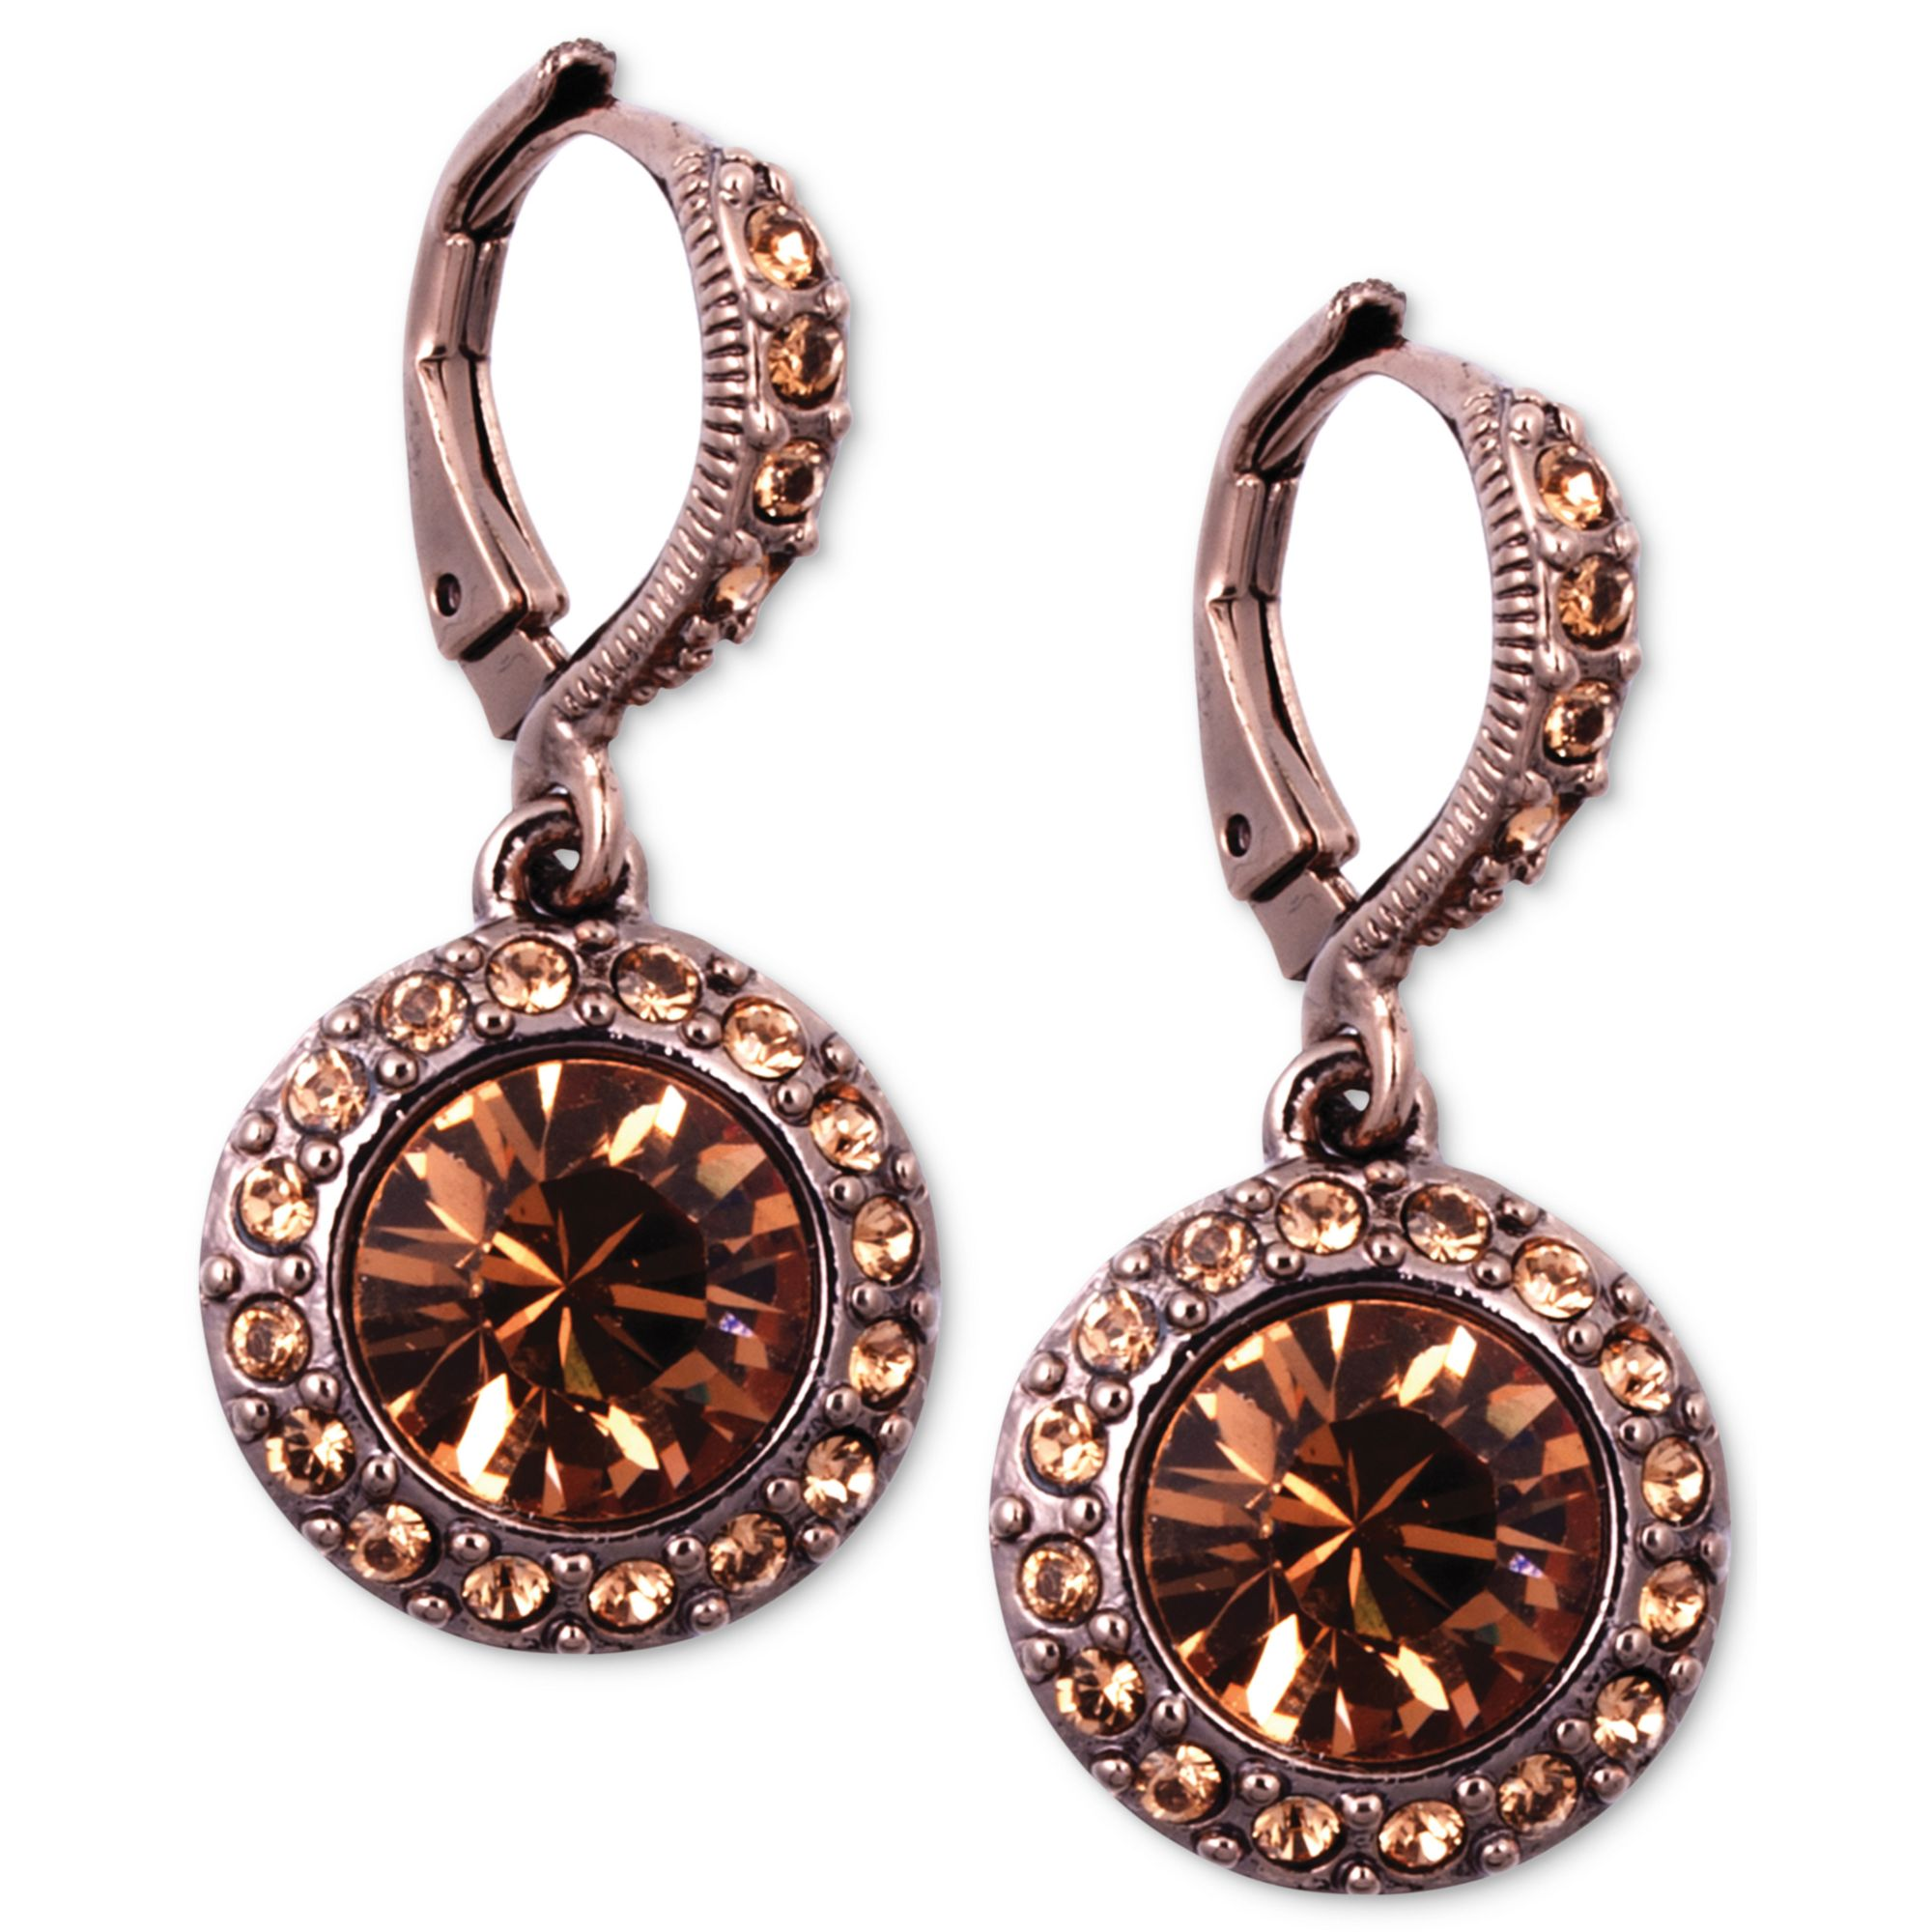 surrounded round to eye catching stud these are earrings create brown cts white diamond pin by baguette diamonds gold rectangular